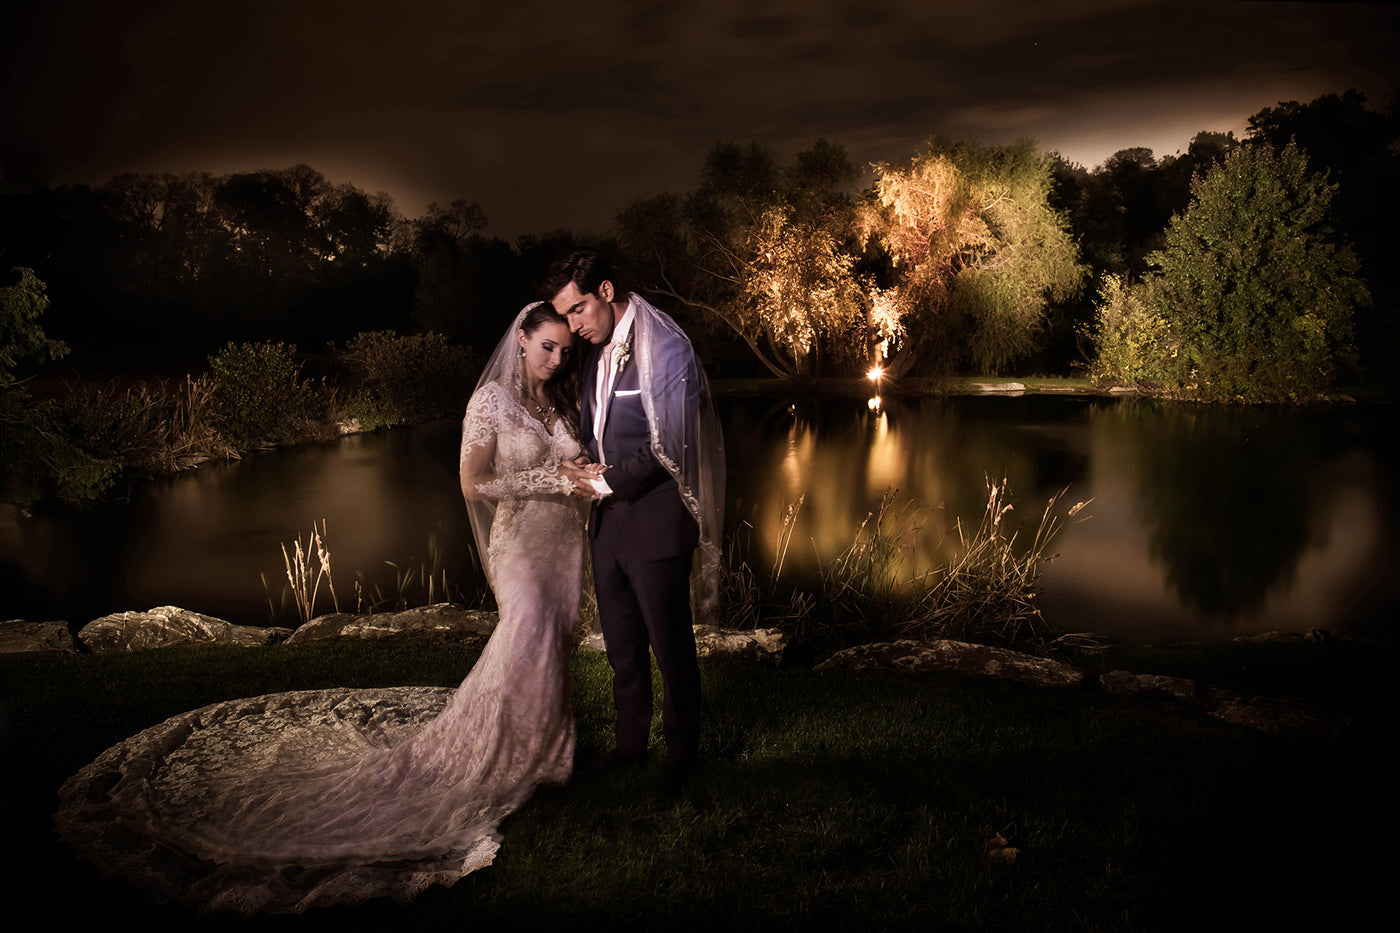 Flash vs. Continuous Light with Cliff Mautner, SanDisk & StellaPro Light | Samy's PhotoSchool